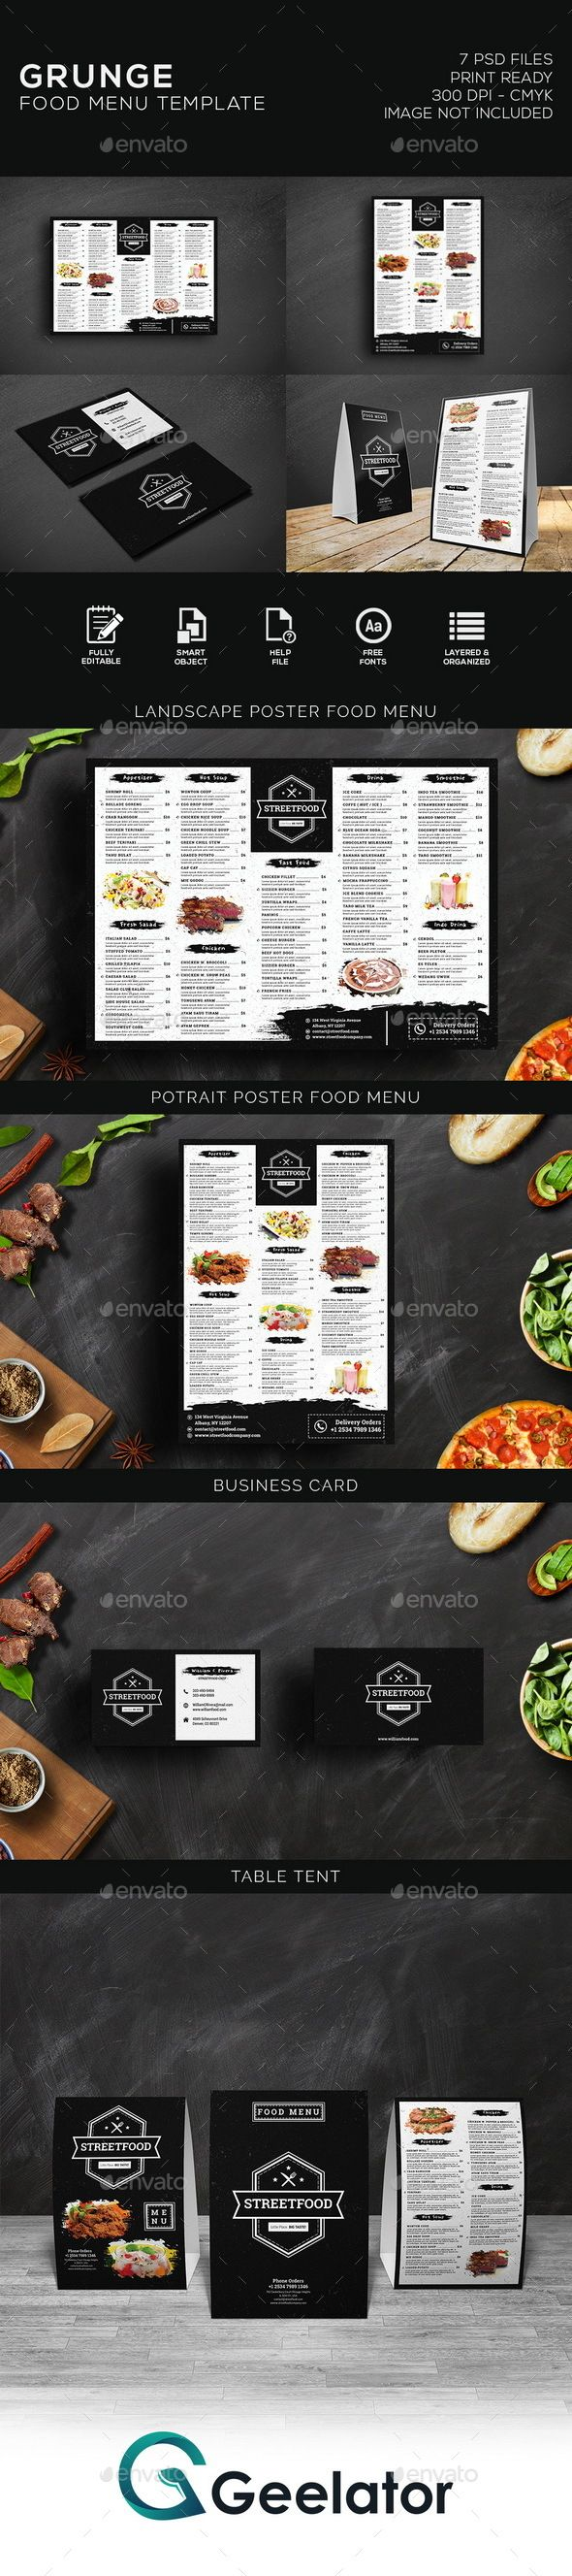 Grunge Food Menu #bar  #black  #business  #cafe  #cafemenu  #coffemenu  #creative  #deliciousmenu #elegant  #fastfood  #fastfoodmenu  #flyer #food  #foodmenu  #grungemenu  #menu  #menudesign  #menupack  #menutemplates  #poster  #printtemplate  #promotion #restaurant  #restaurantmenu  #retro  #steak  #street  #streetmenu  #tabletent  #vintage